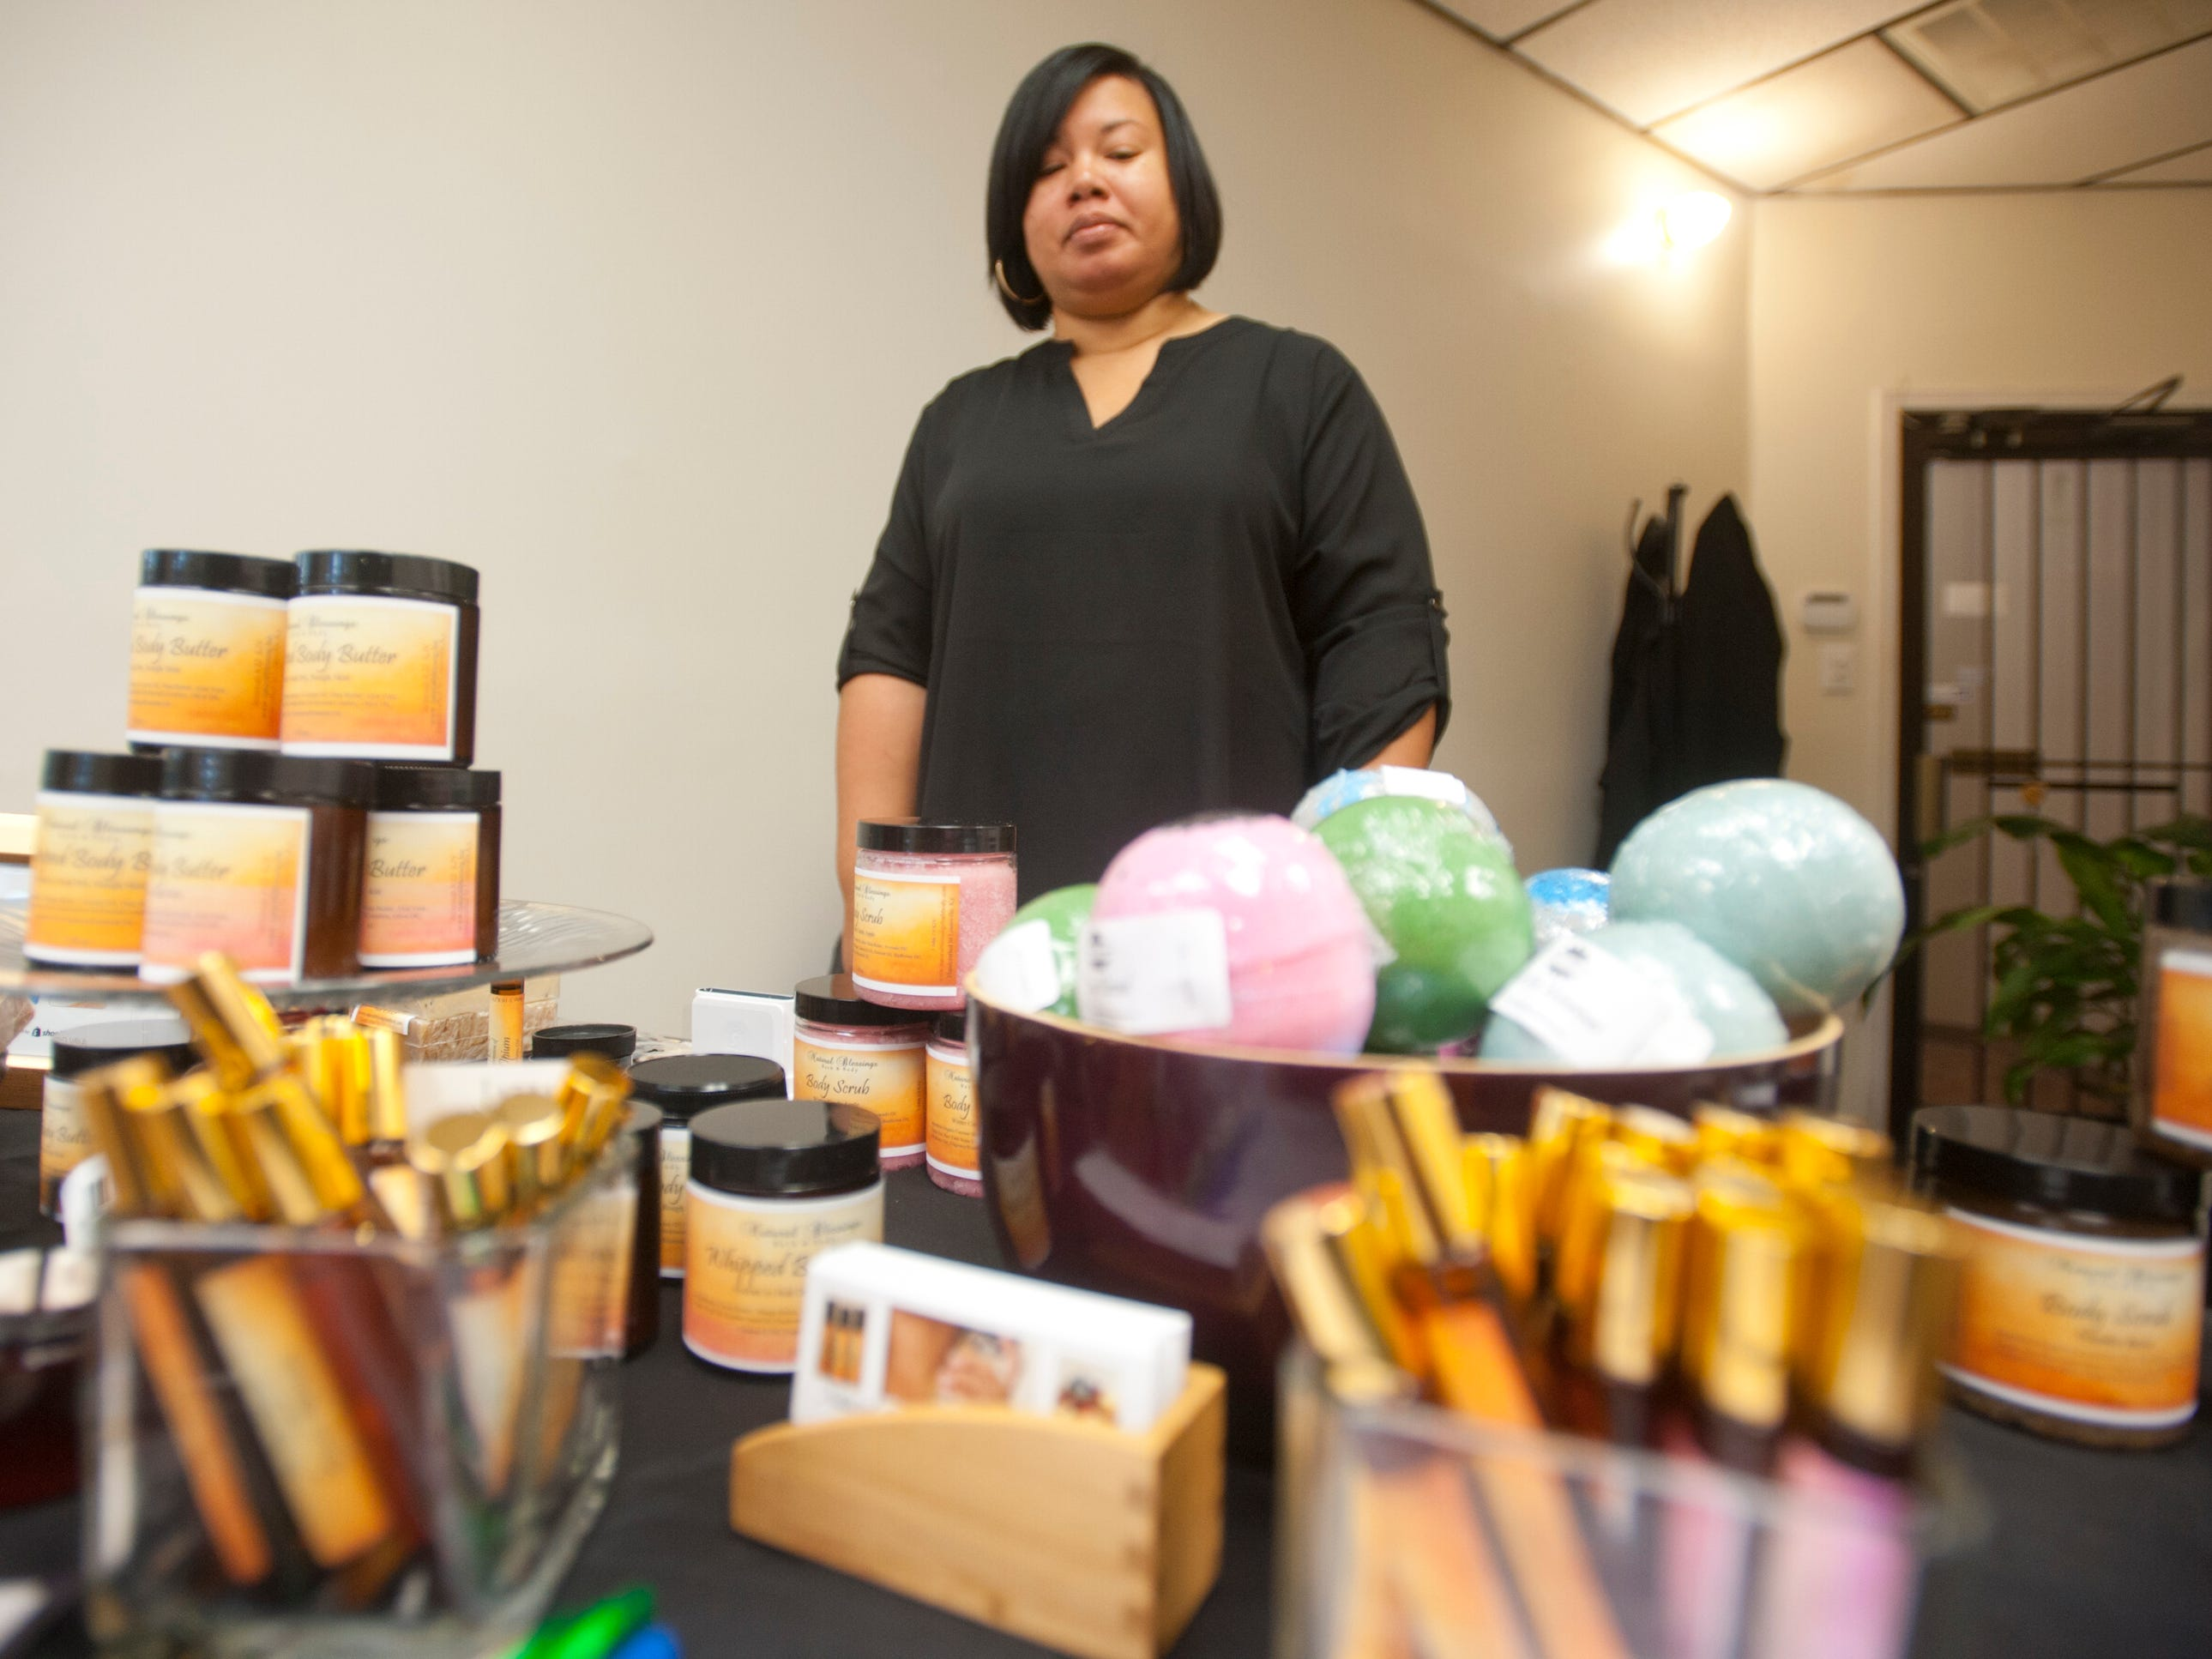 Theresa Jones, owner of National Blessings Bath & Body, demonstrates her products at Blue Palm Access, a women's boutique at 2001 W. Broadway, as part of Louisville's Small Business Saturday. 24 November 2018